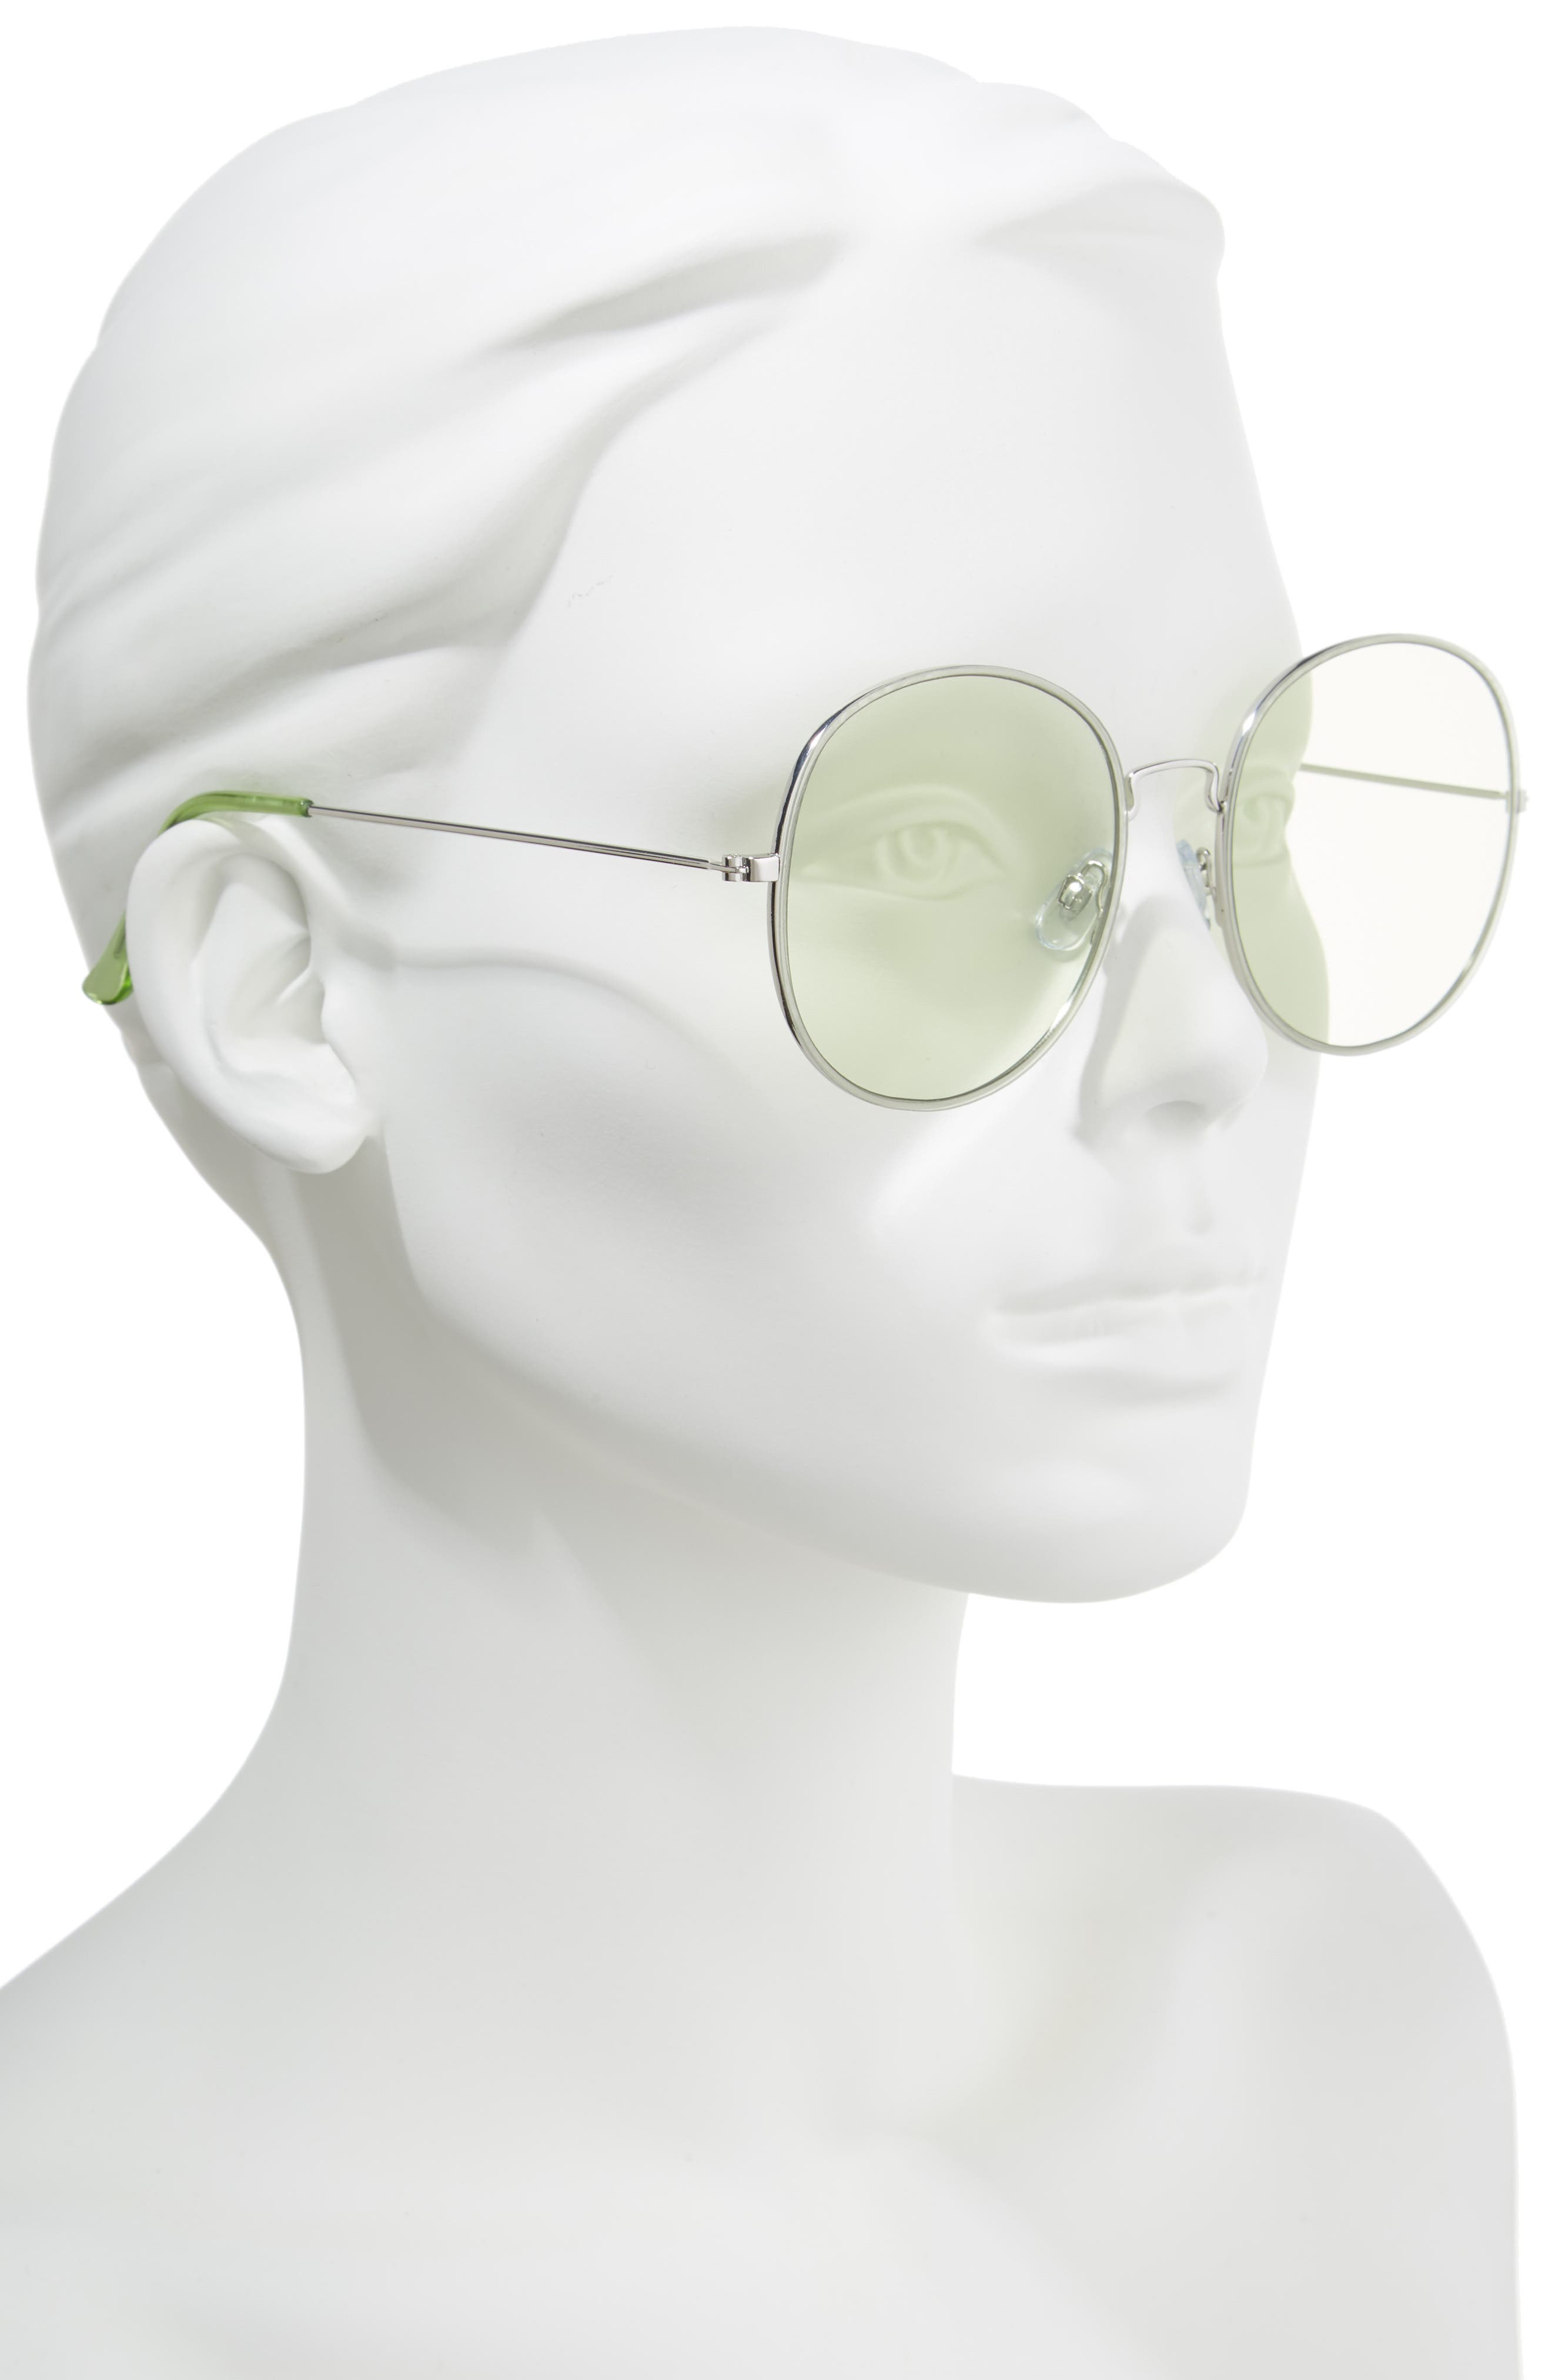 57mm Flat Round Sunglasses,                             Alternate thumbnail 2, color,                             300